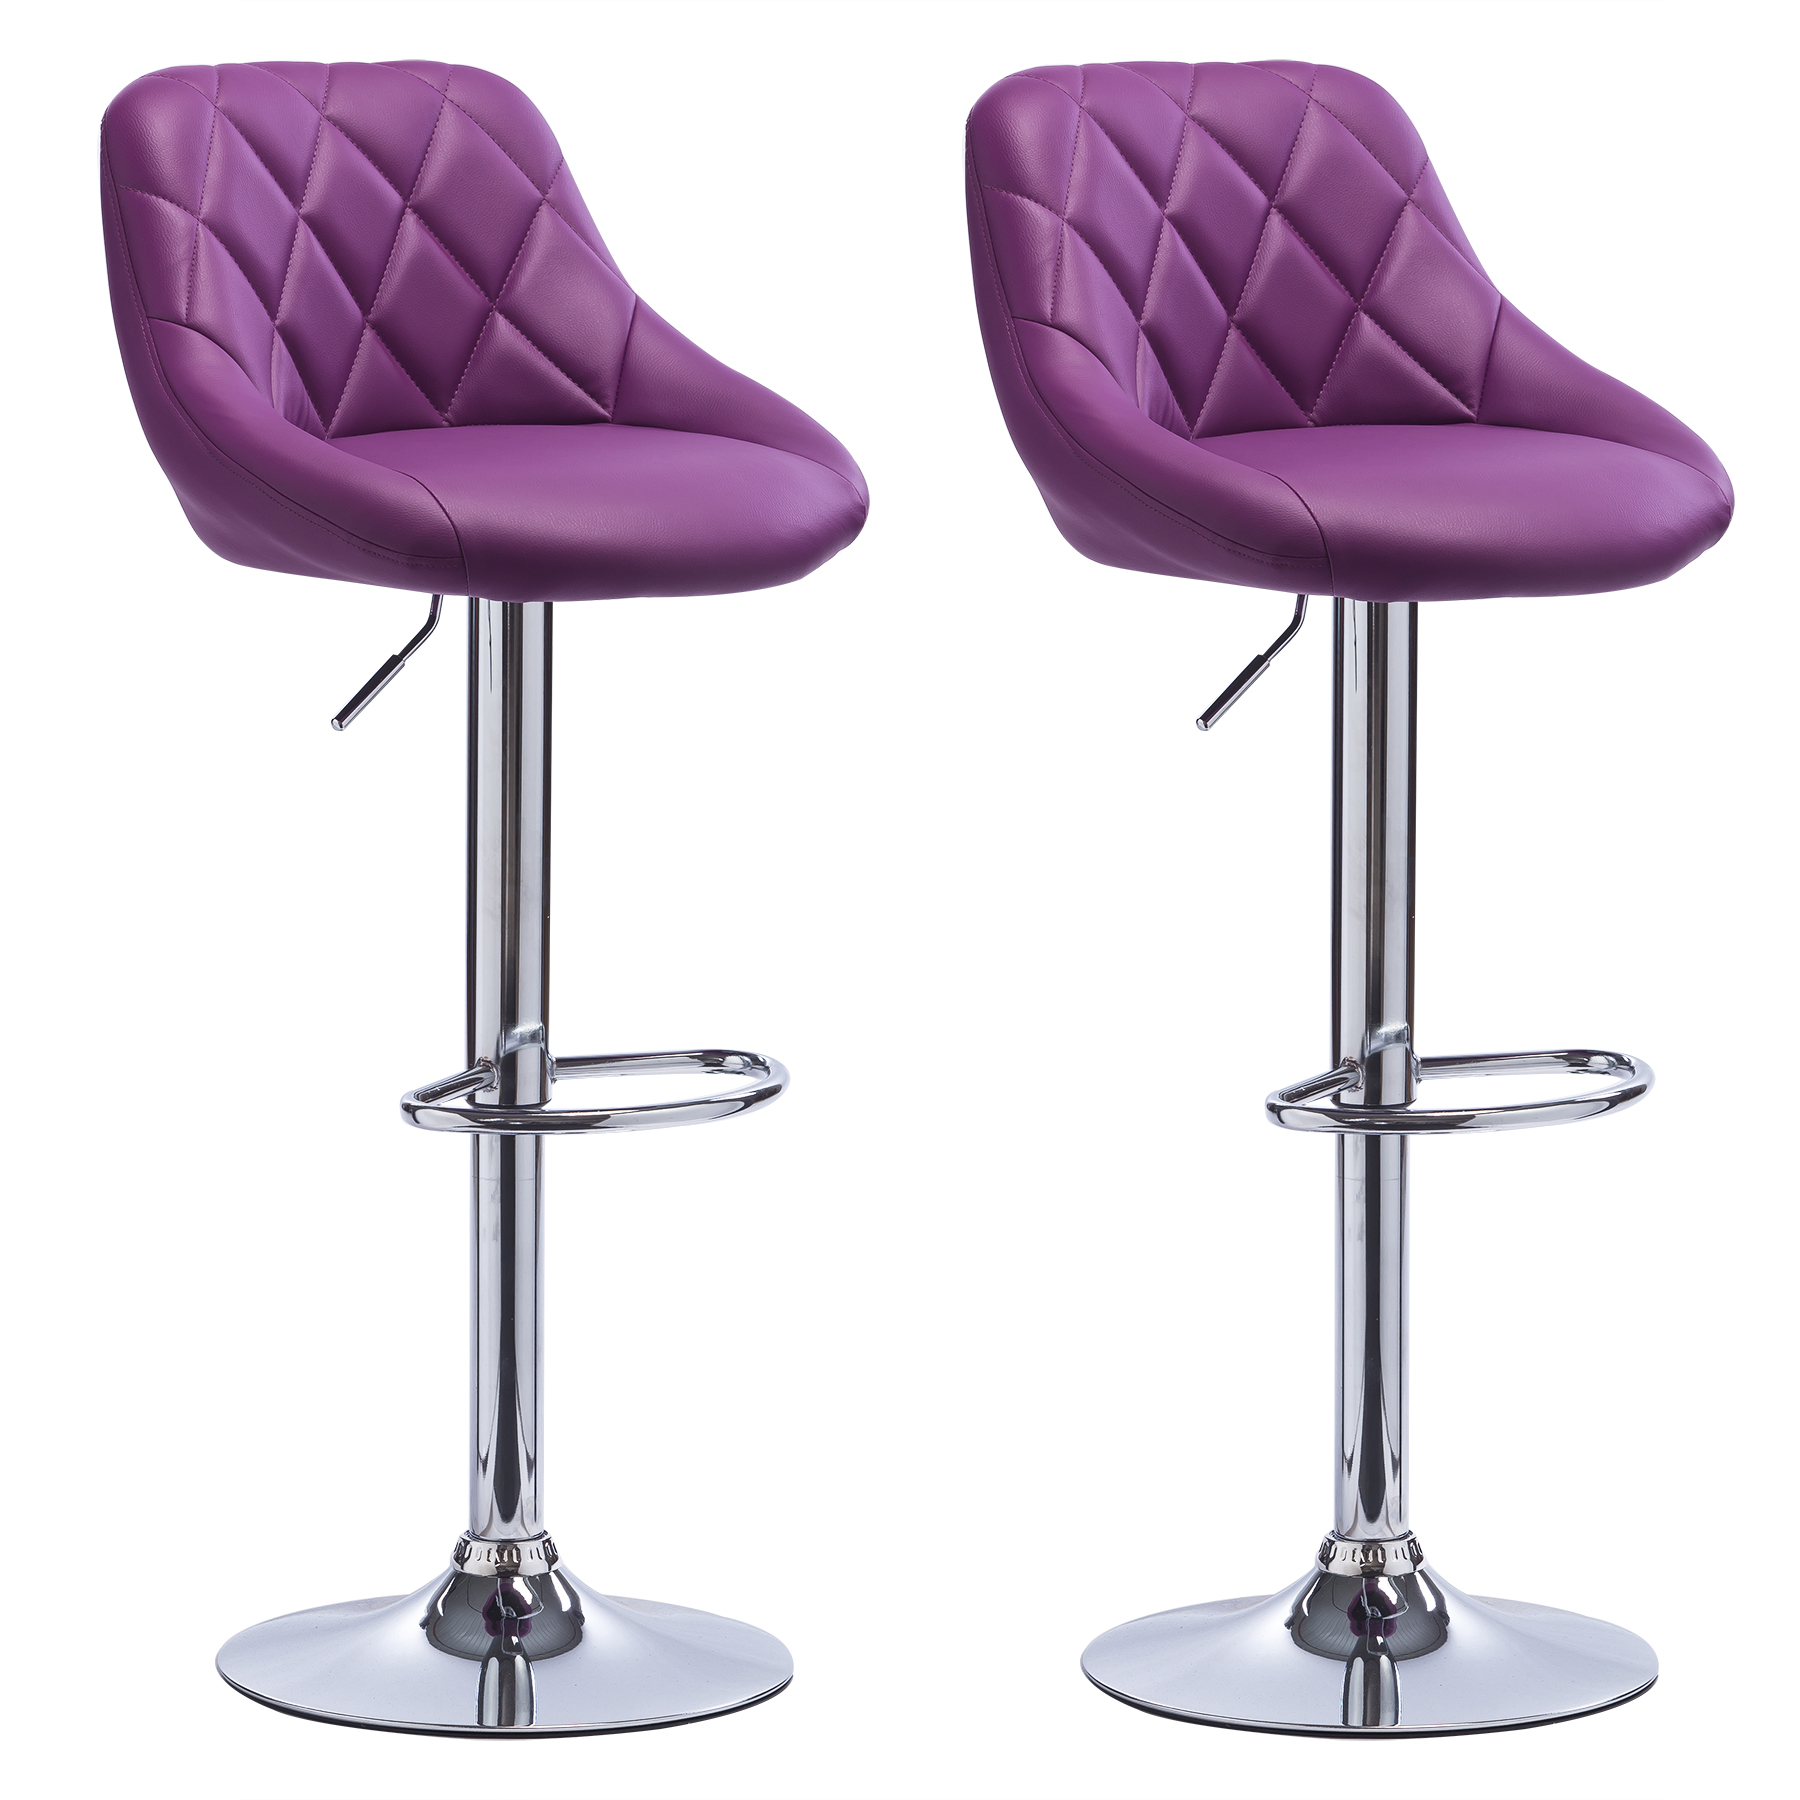 2 x Bar Stools Faux Leather Swivel Breakfast Kitchen Stool  : BH23vl 2N1 from www.ebay.co.uk size 1800 x 1800 jpeg 911kB